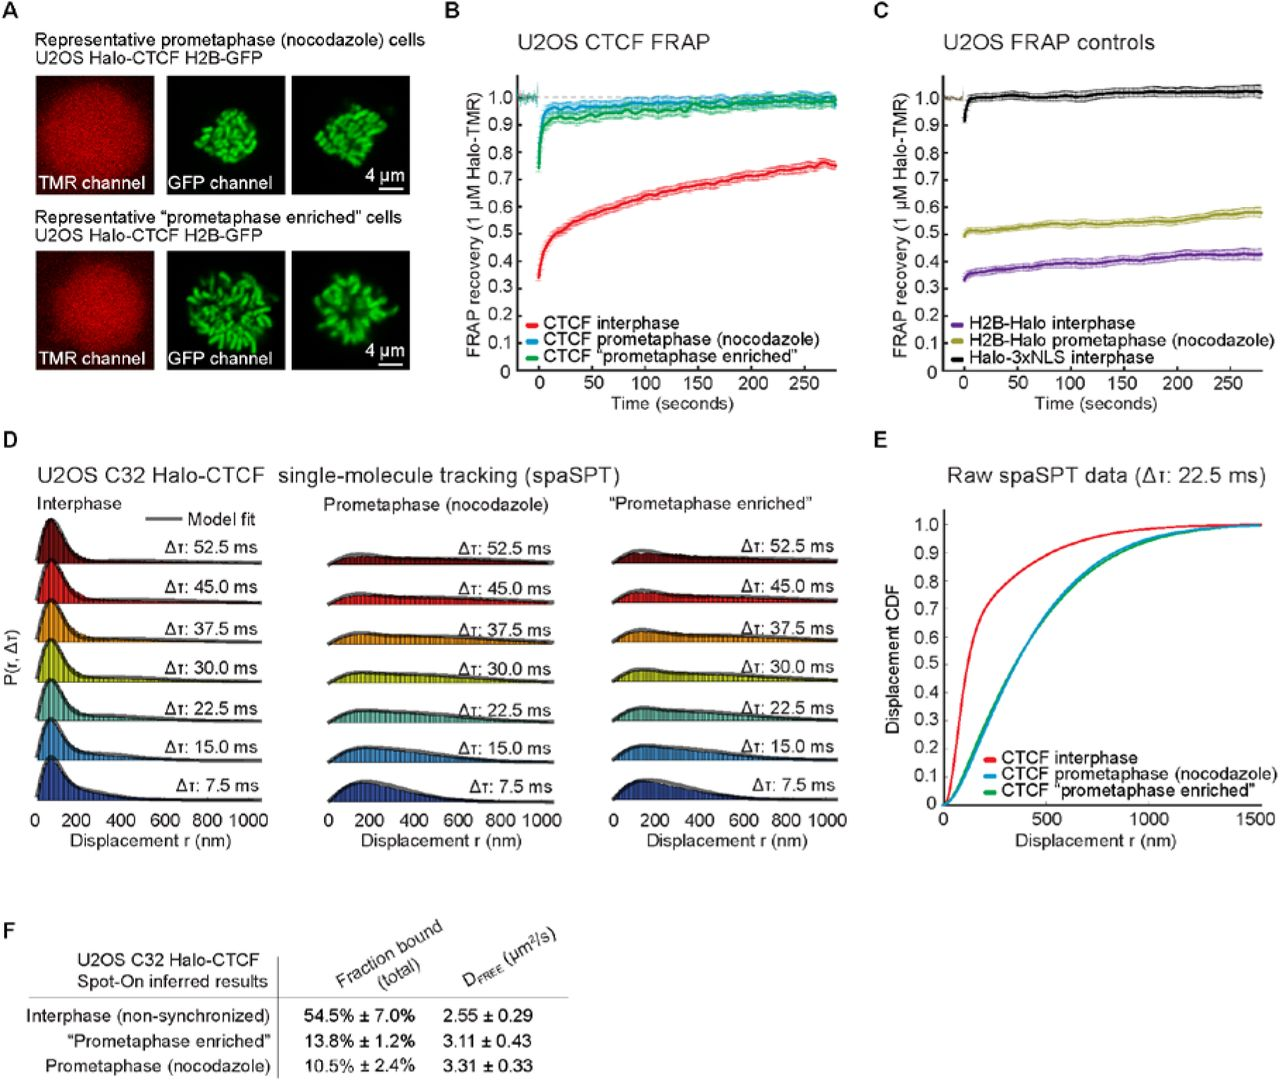 CTCF sites display cell cycle dependent dynamics in factor binding